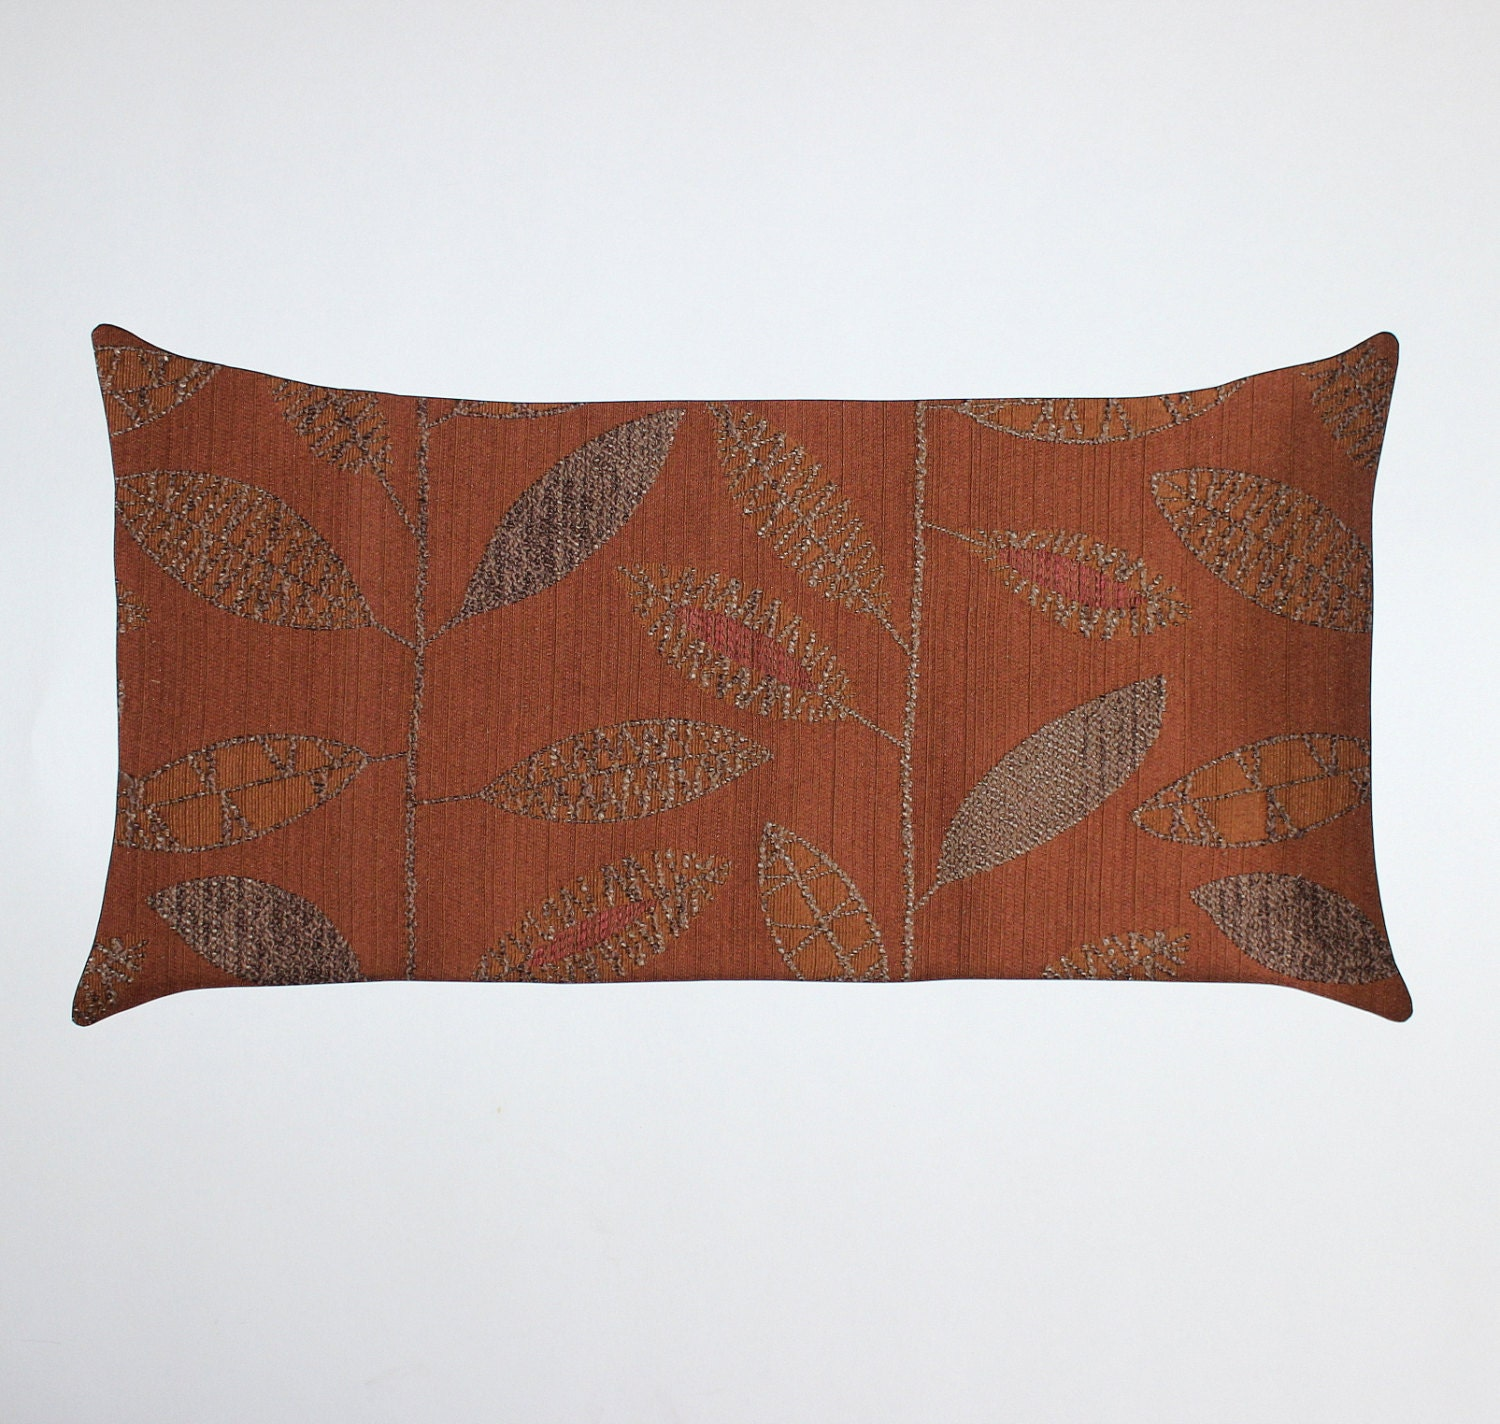 12x21 Lumbar Rust Pillow Cover Decorative by couchdwellers